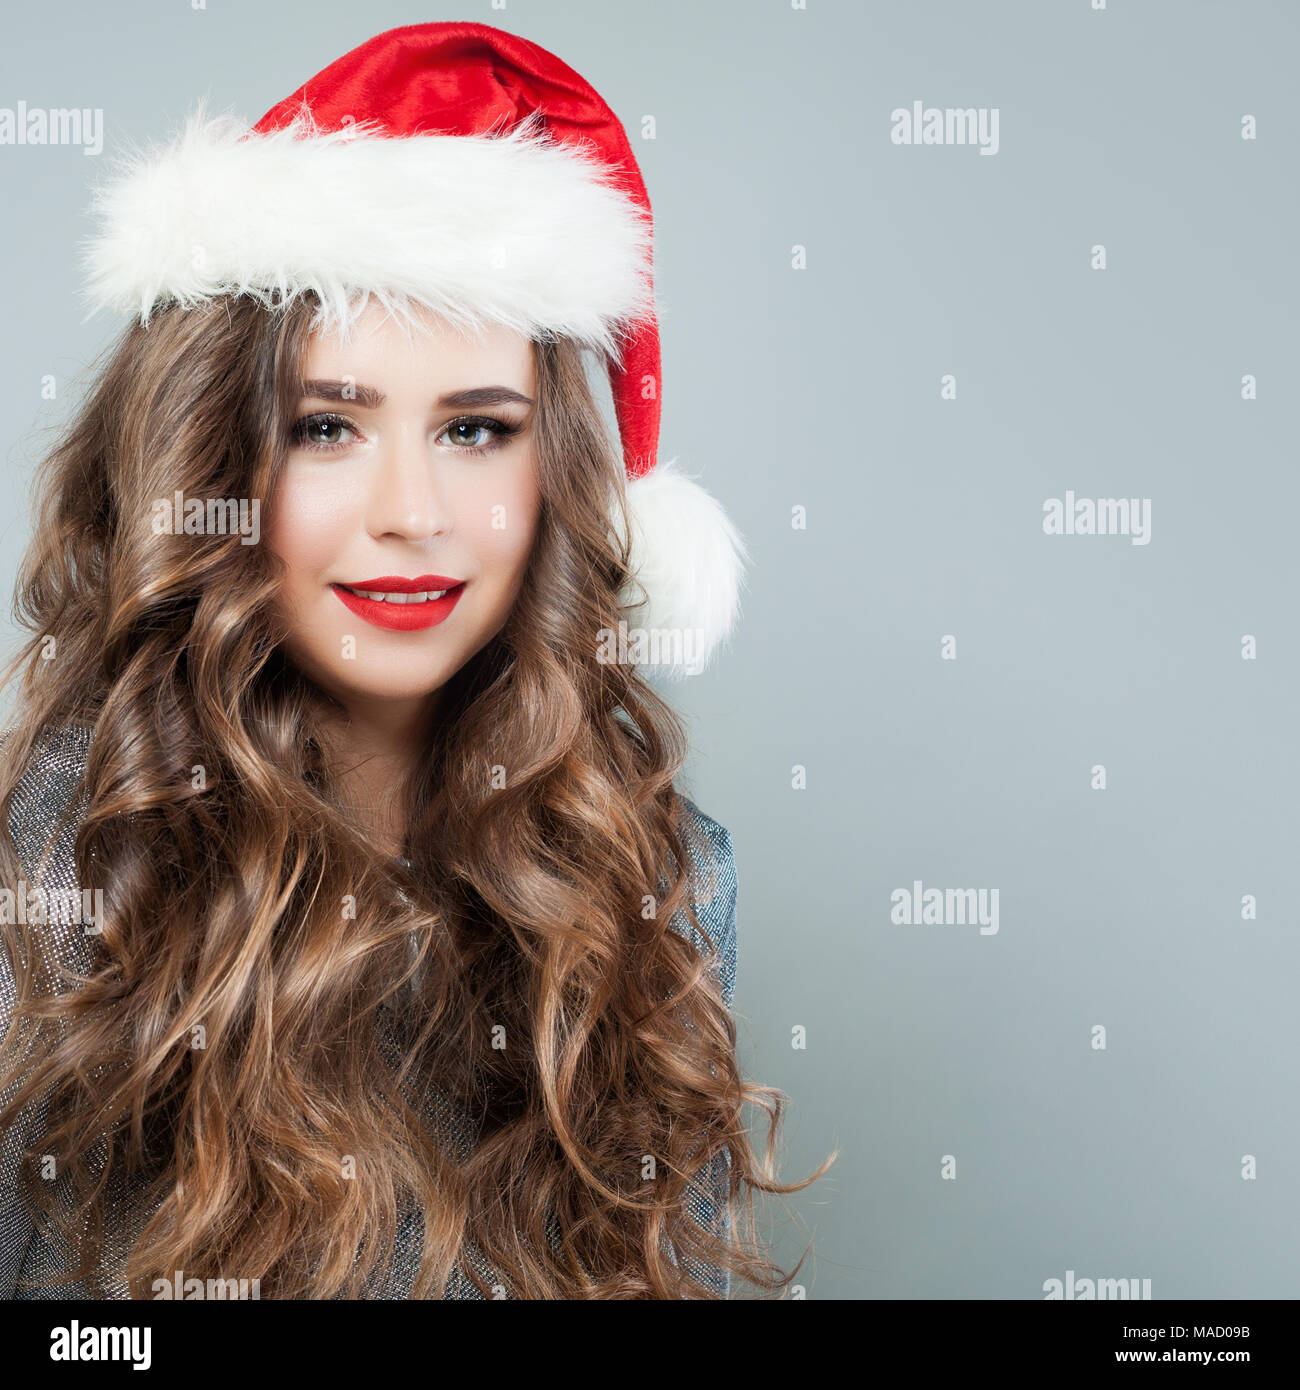 9d40a6393bad4 Christmas Woman Fashion Model wearing Santa Hat on Background with Copy  space. Cute Young Woman Fashion Model with Curly Hair and Red Lips Makeup  Smil